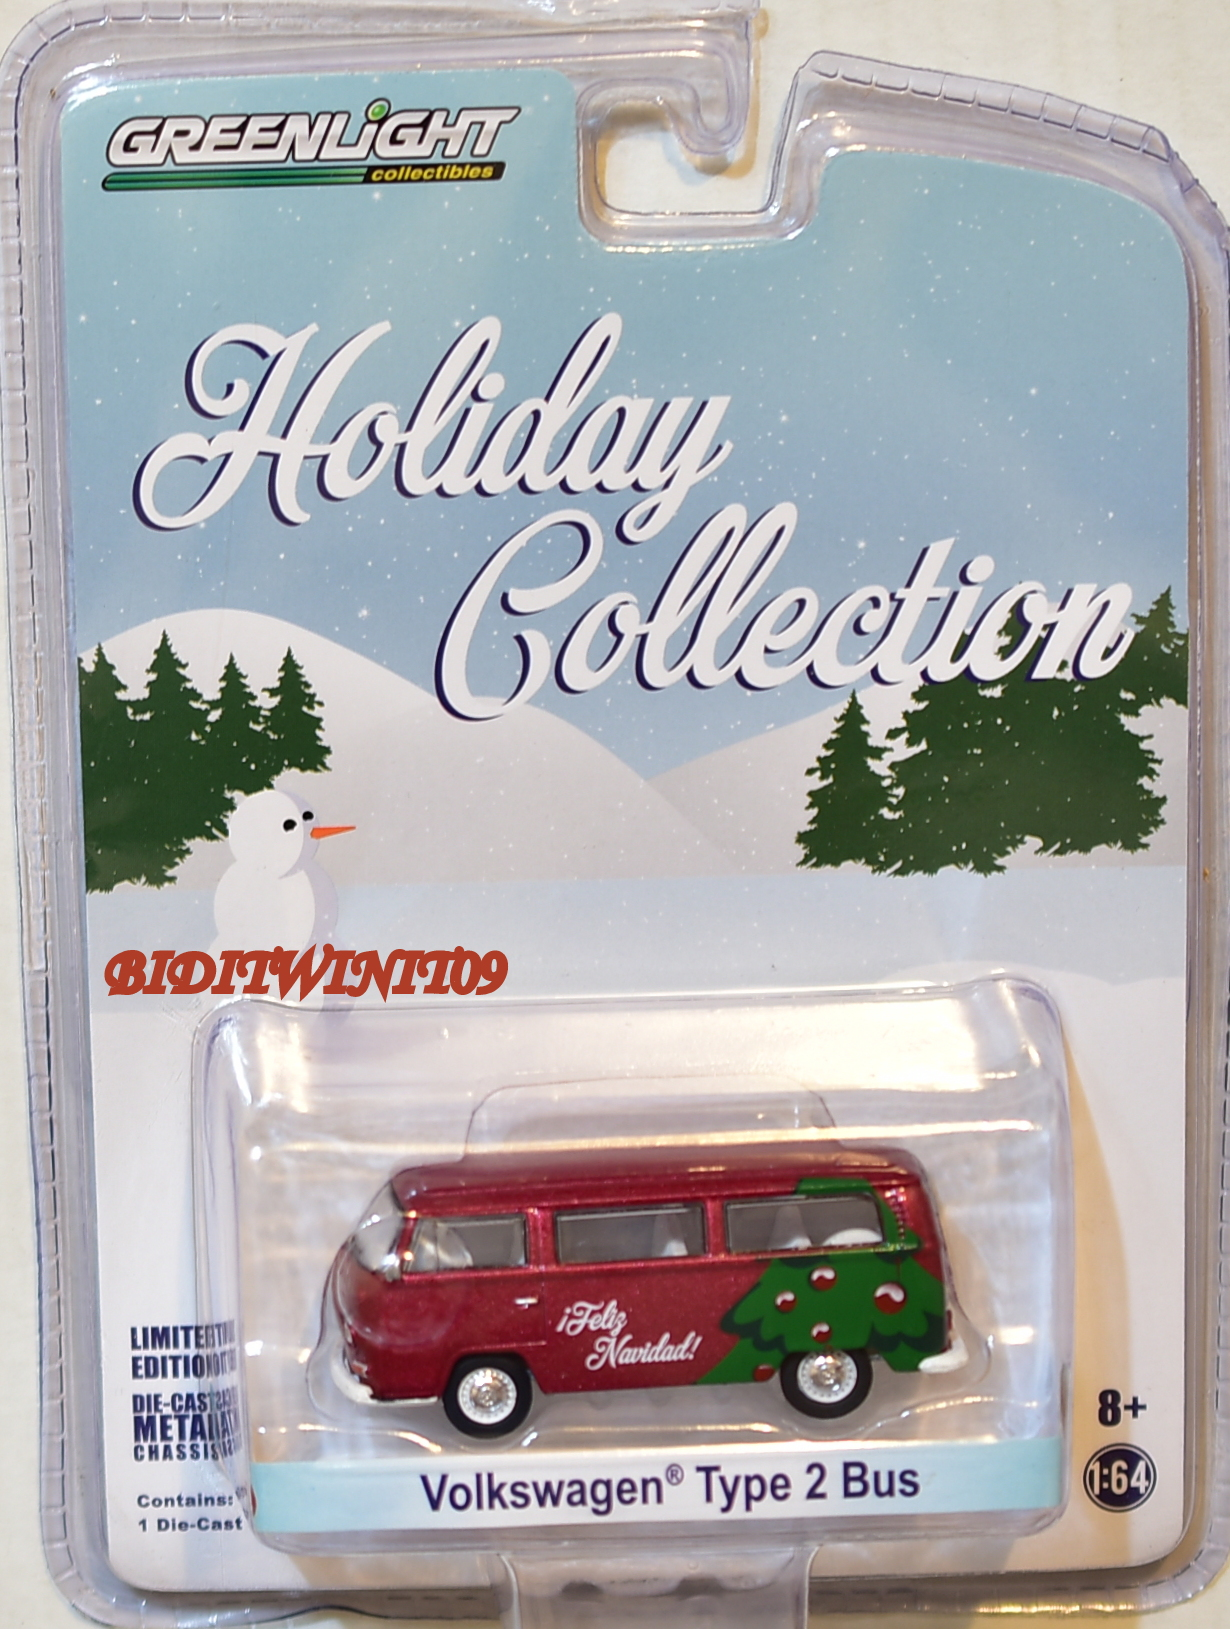 GREENLIGHT HOLIDAY COLLECTION VOLKSWAGEN TYPE 2 BUS